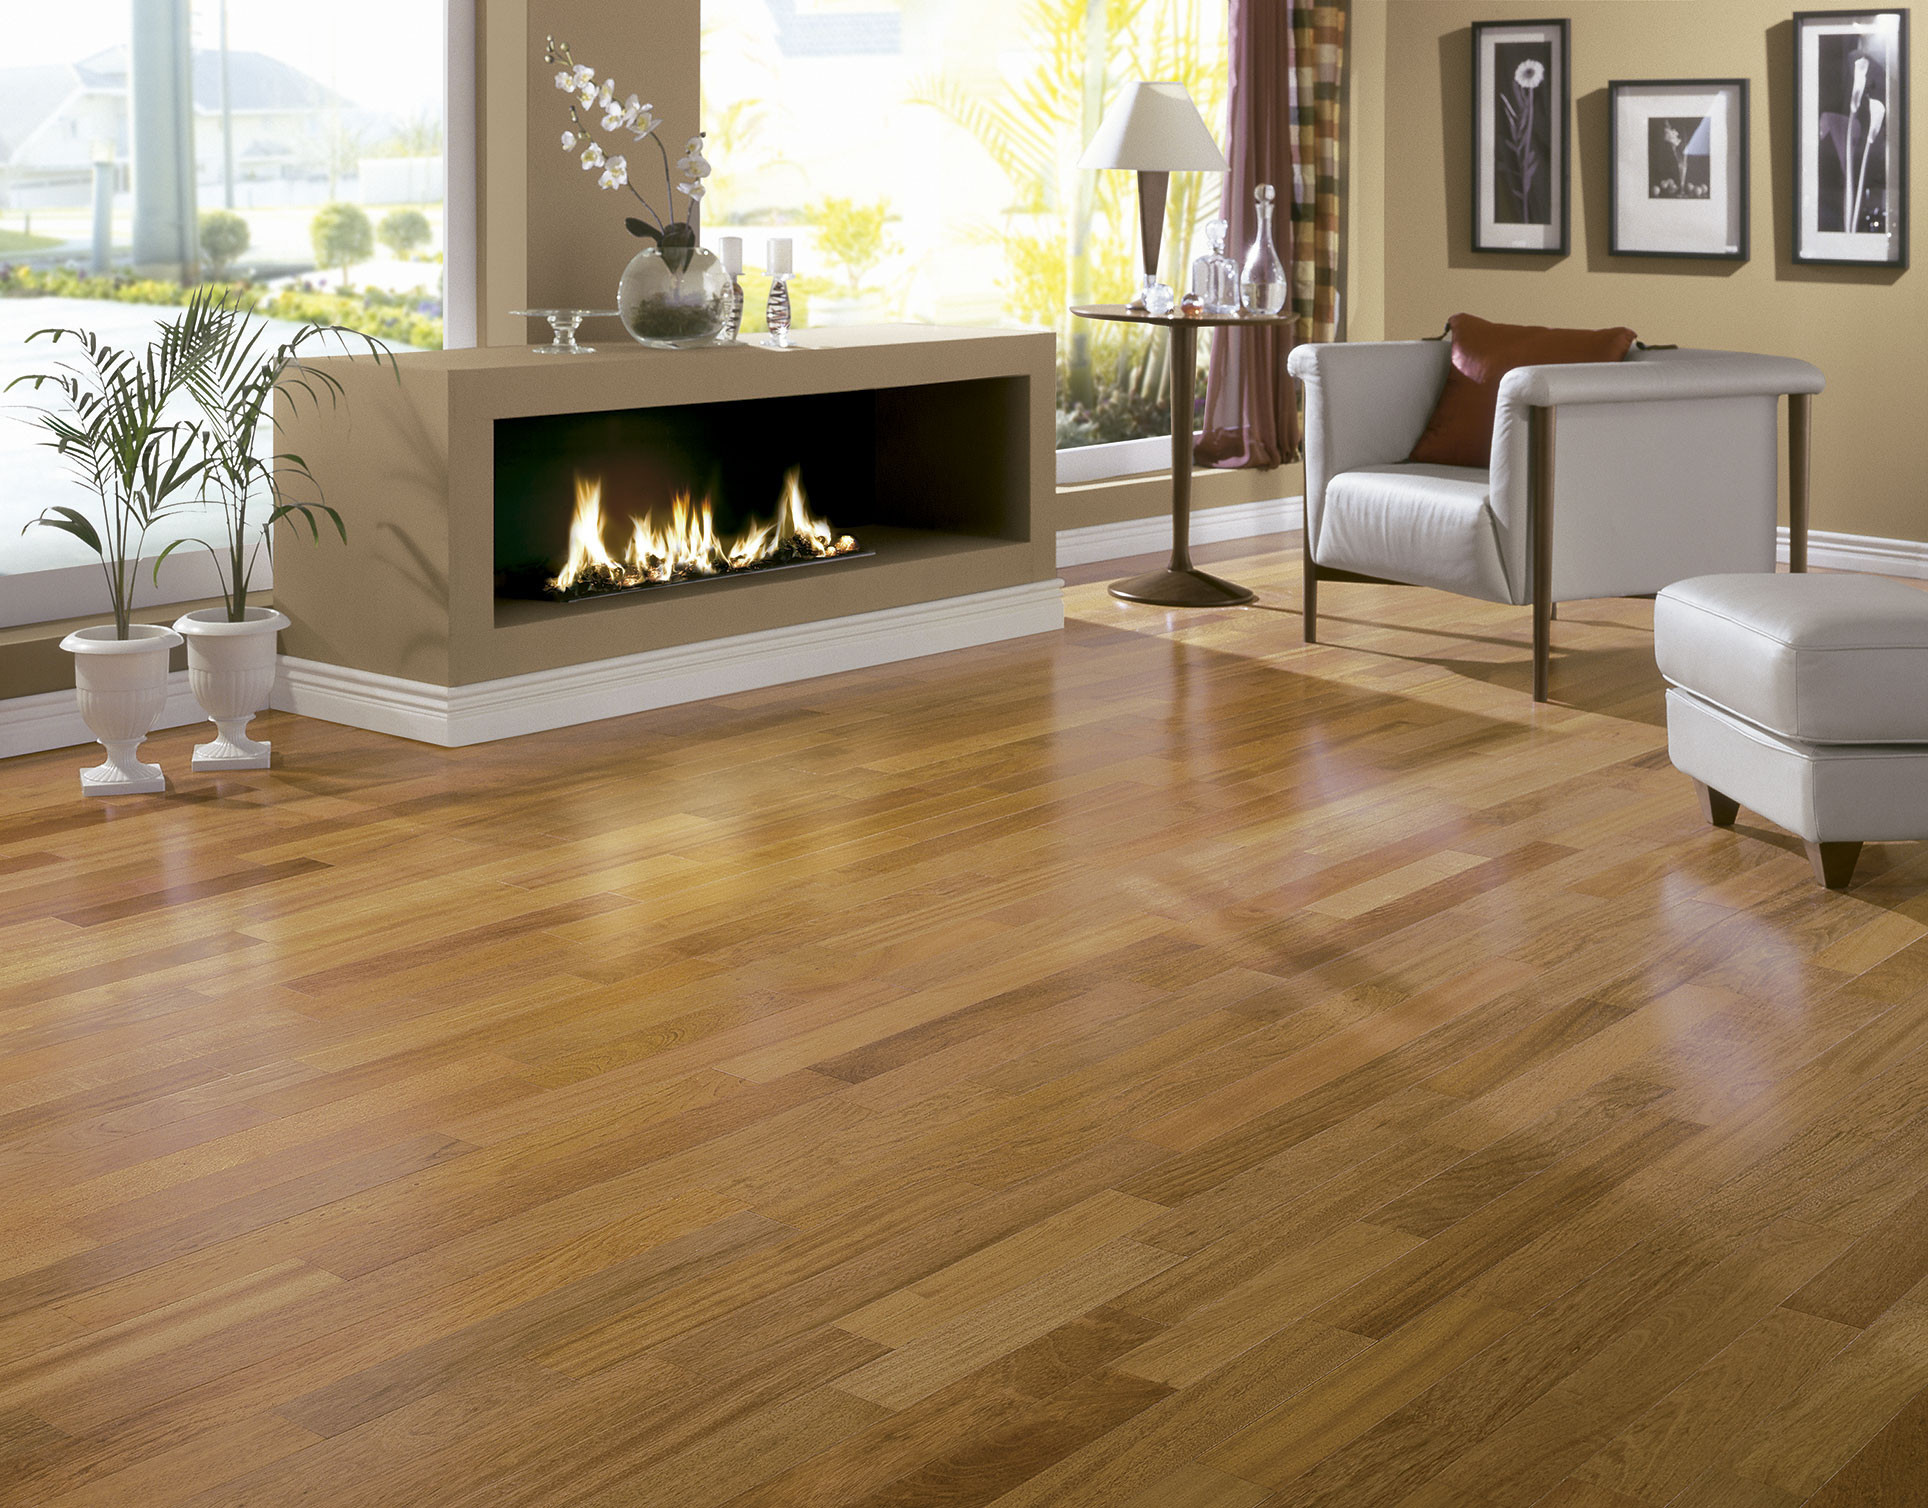 how to clean engineered hardwood floors after installation of 21 awesome best way to clean hard wood floors accroalamode regarding best way to clean hard wood floors elegant engaging discount hardwood flooring 5 where to buy